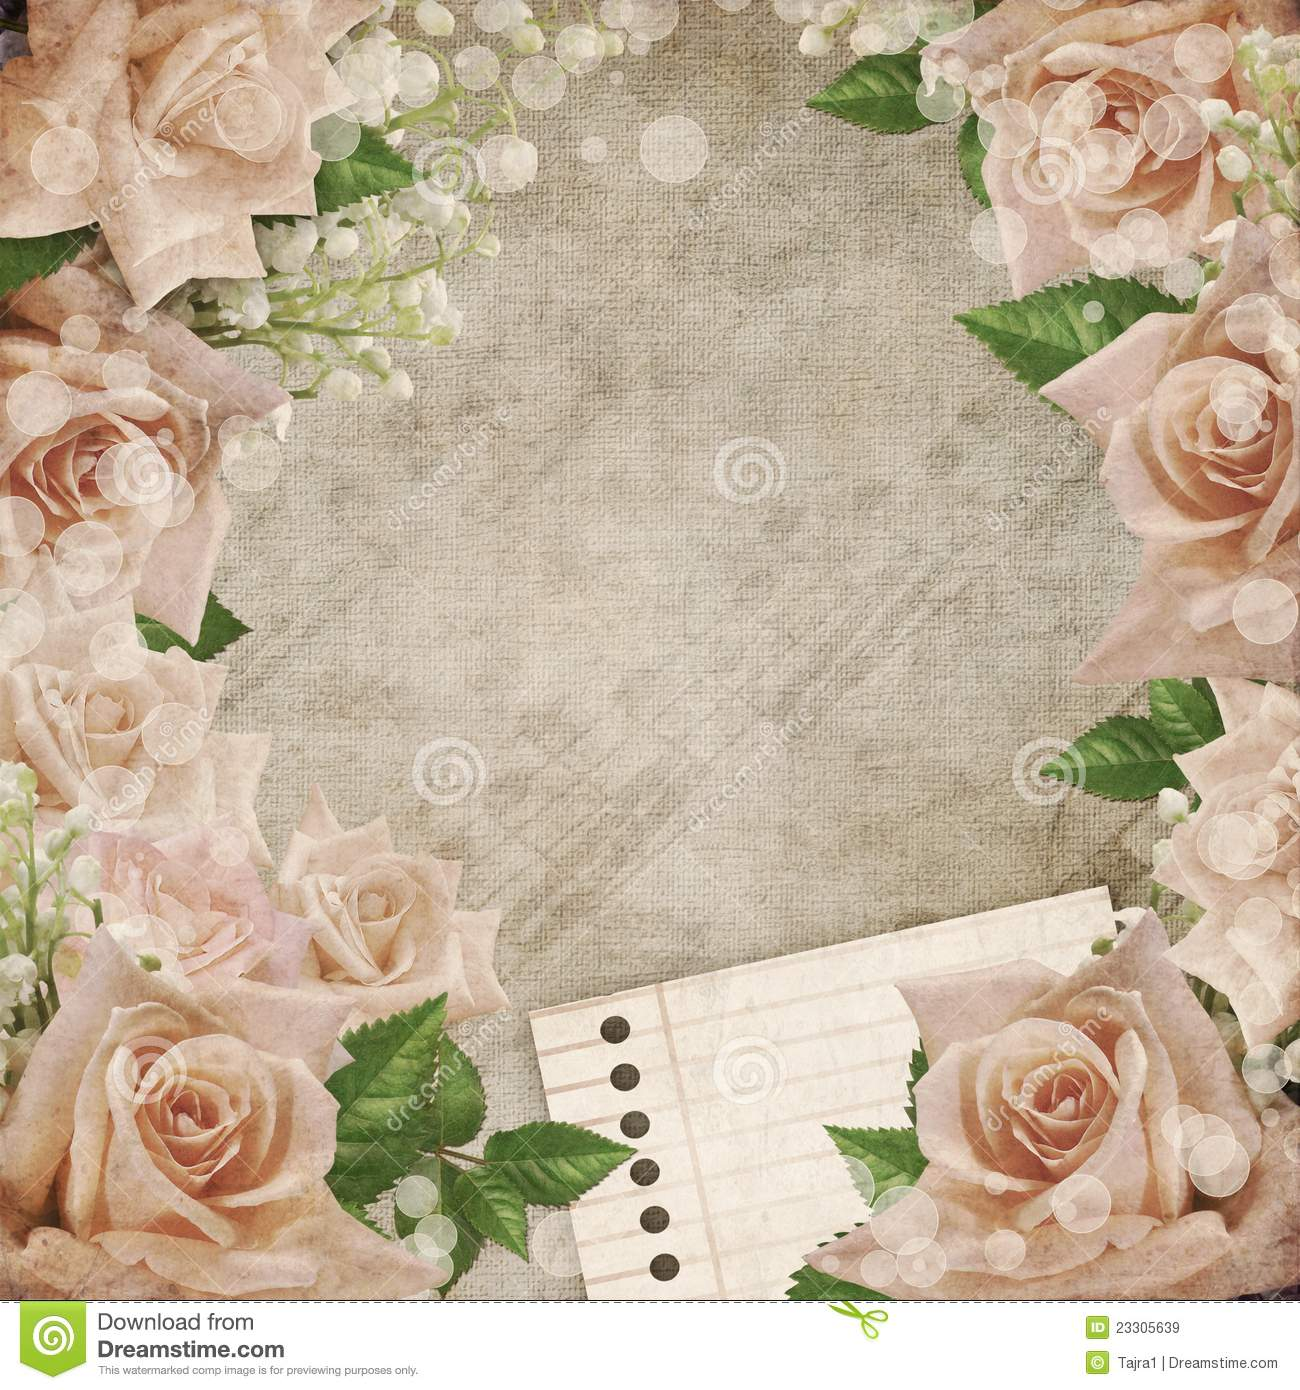 wedding vintage romantic background ith roses stock illustration illustration of banner leaf 23305639 dreamstime com